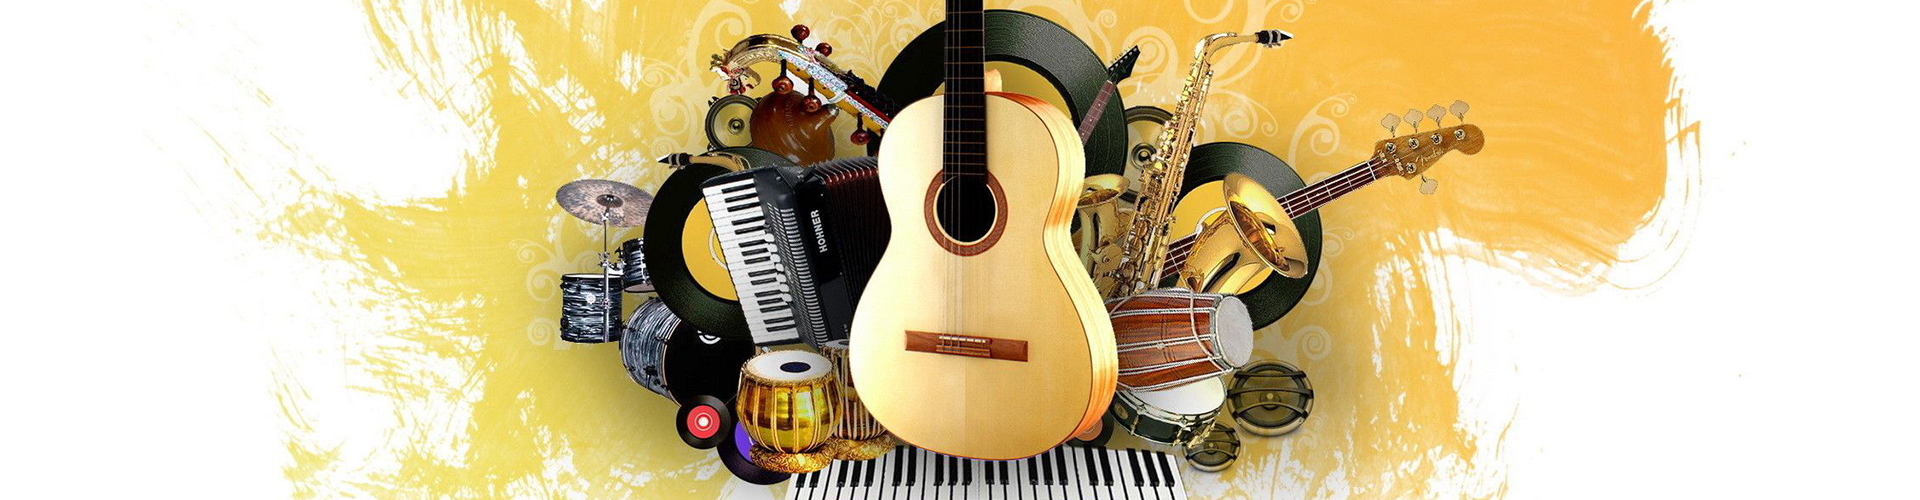 013. Music Instruments, tools and Musical equipment's